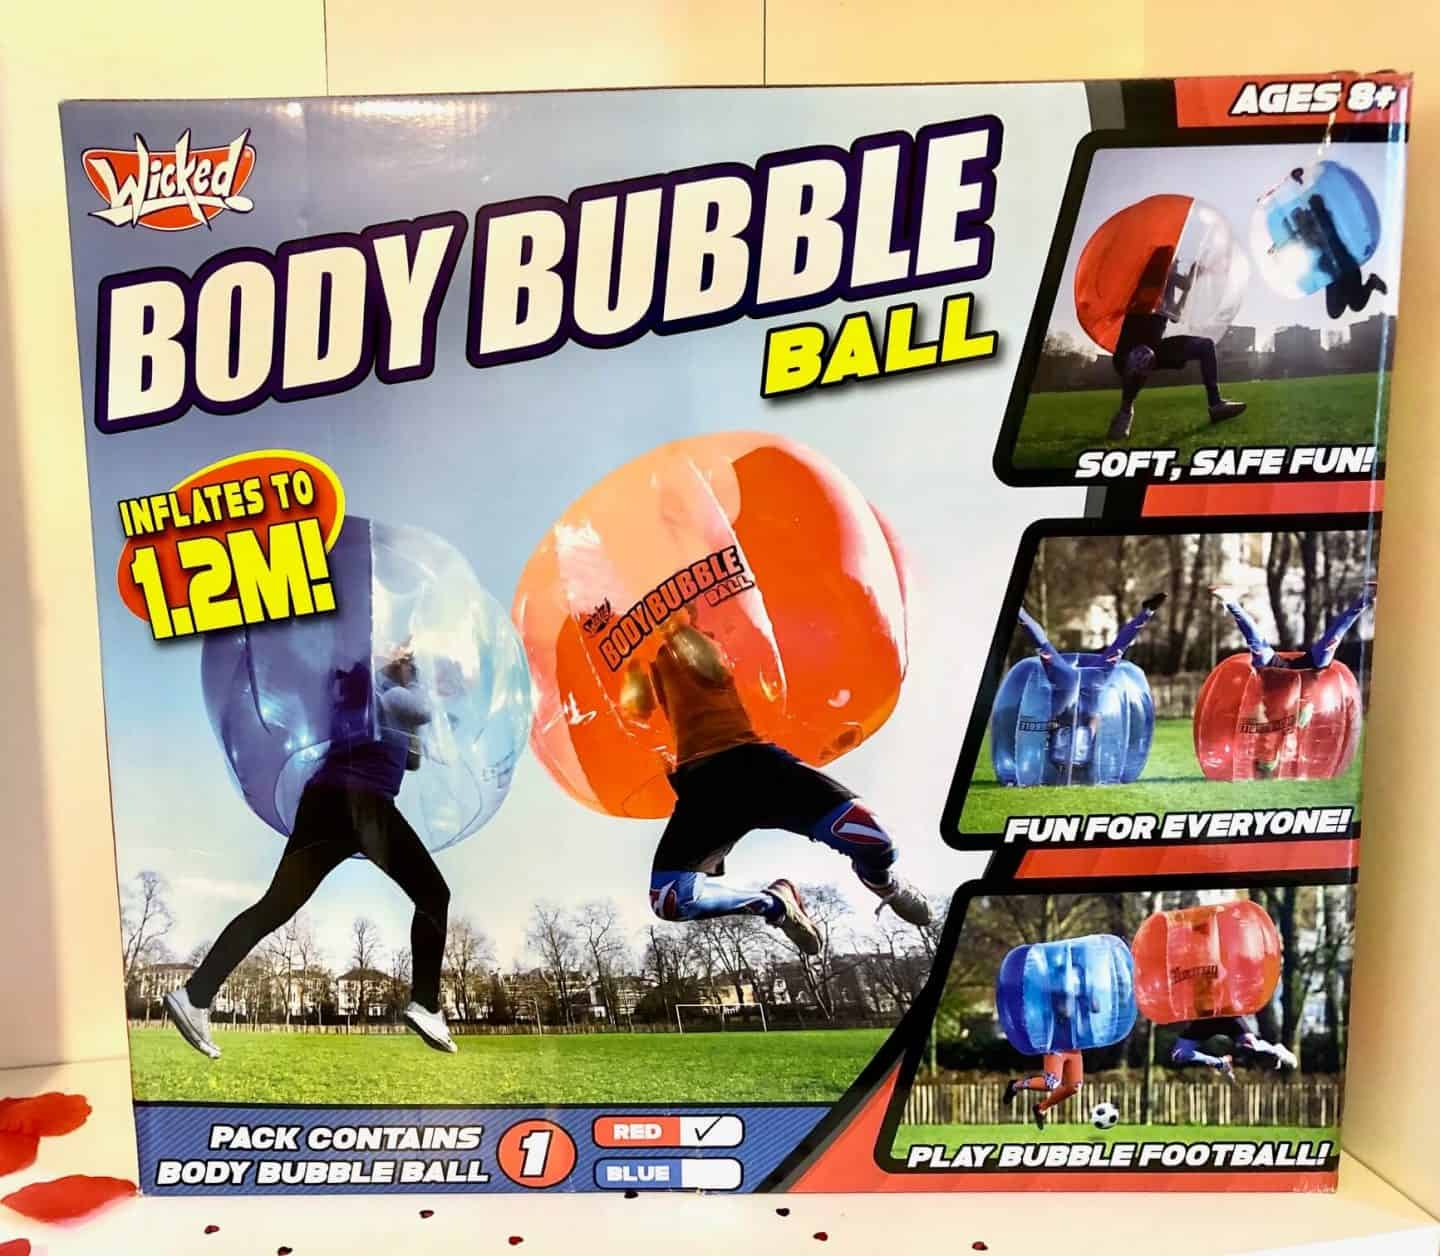 Body Bubble Ball